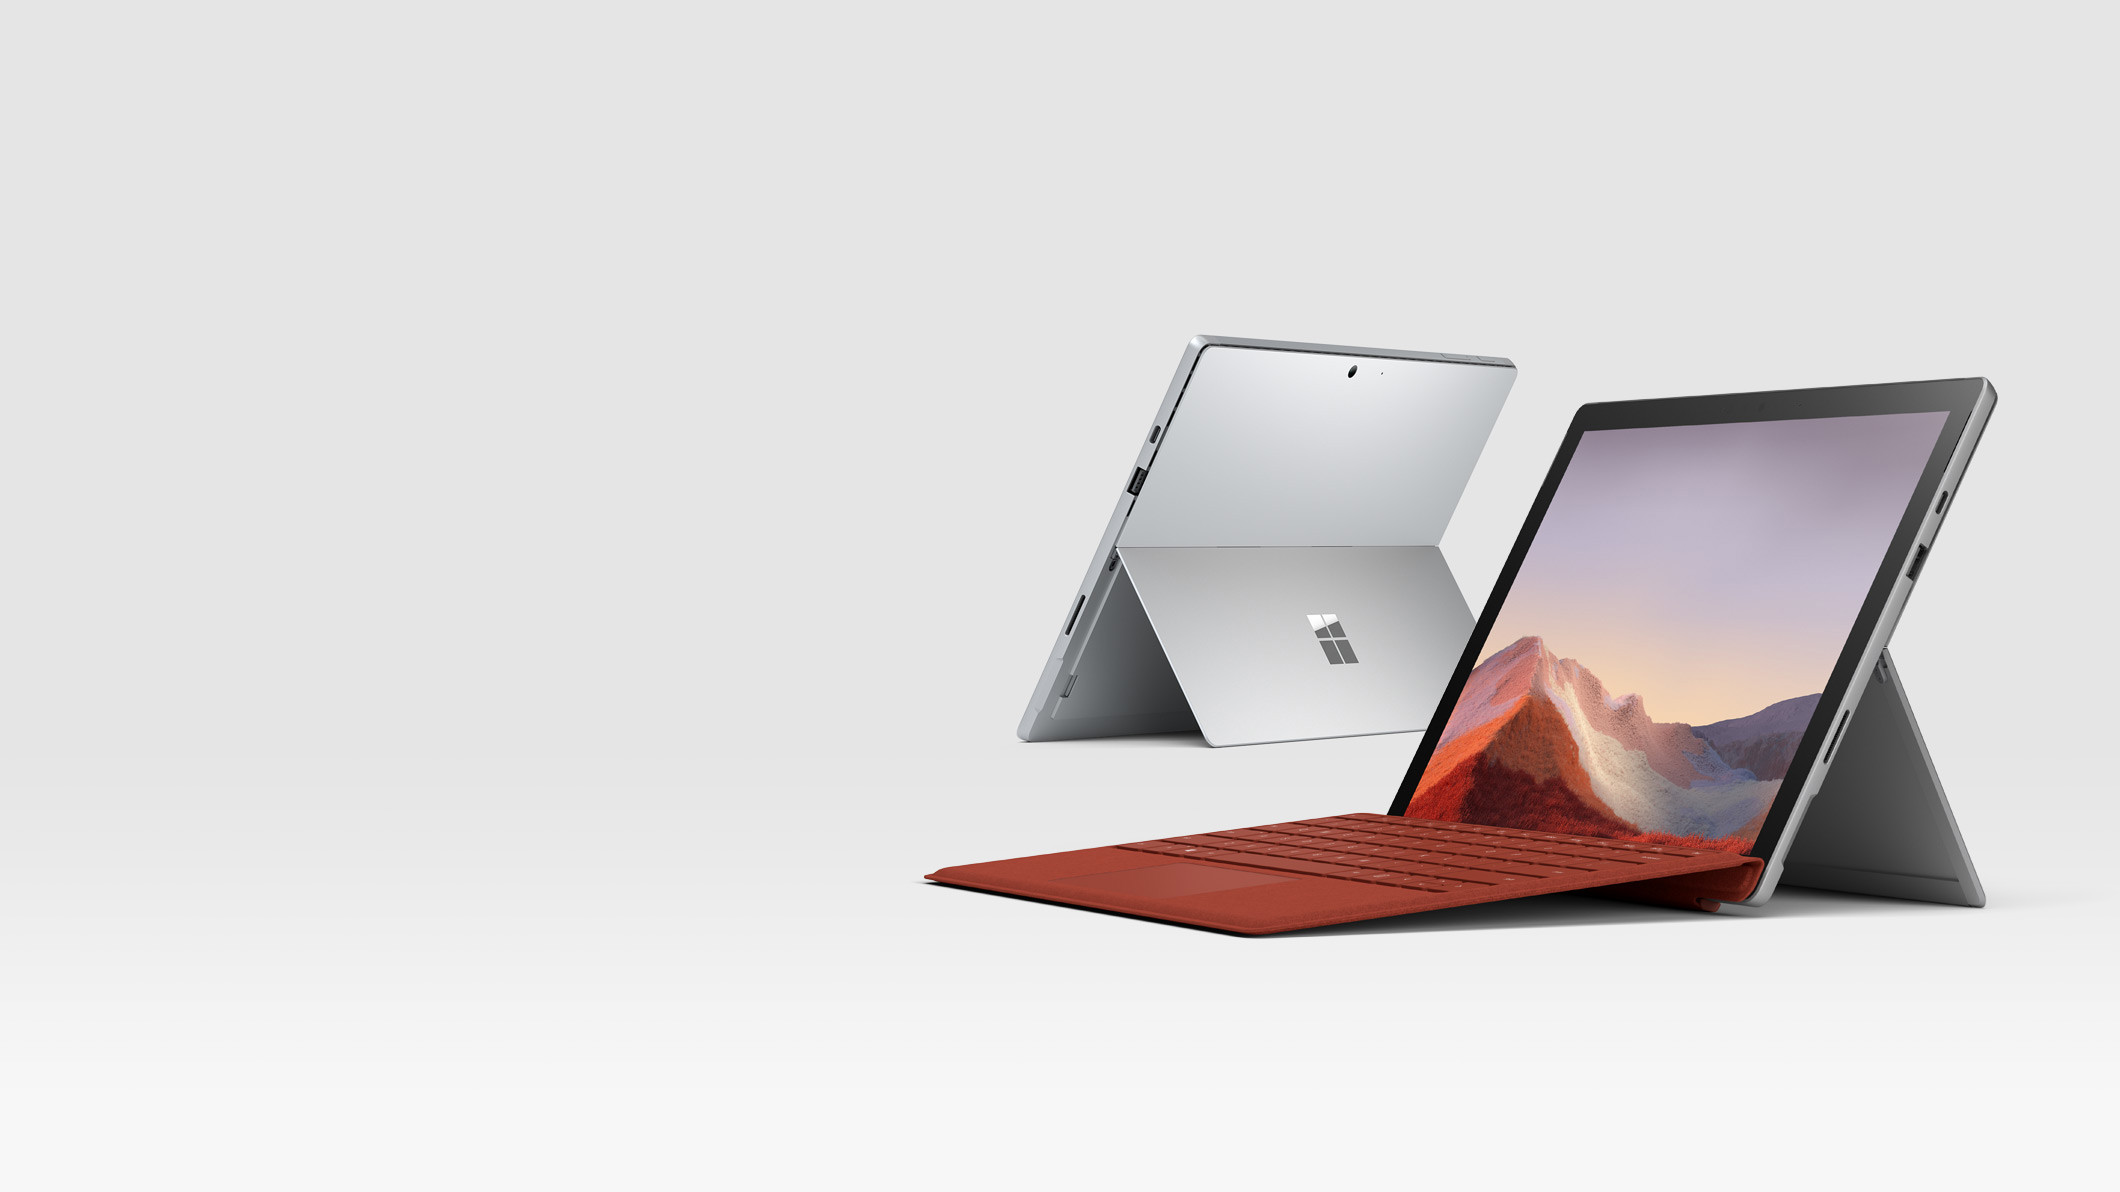 Surface Pro 7 in Platinum with Surface Signature Type Cover in Poppy Red